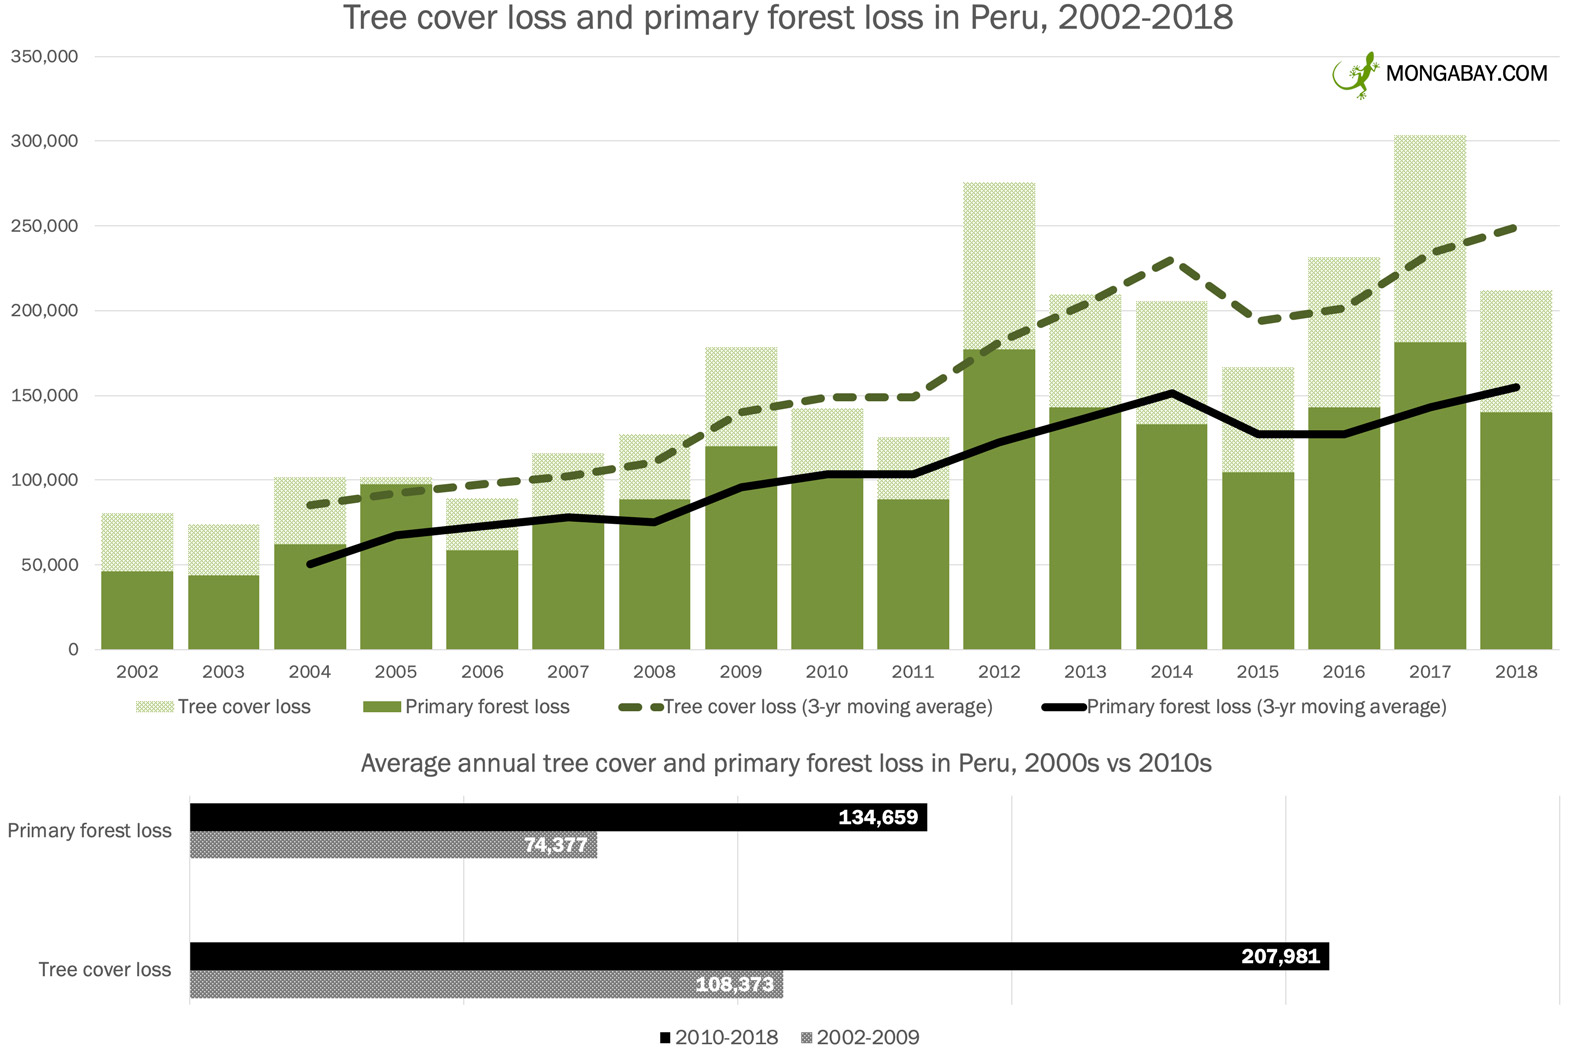 Tree cover loss and primary forest loss in Peru from 2002 to 2018 according to data from Hansen et al 2019.